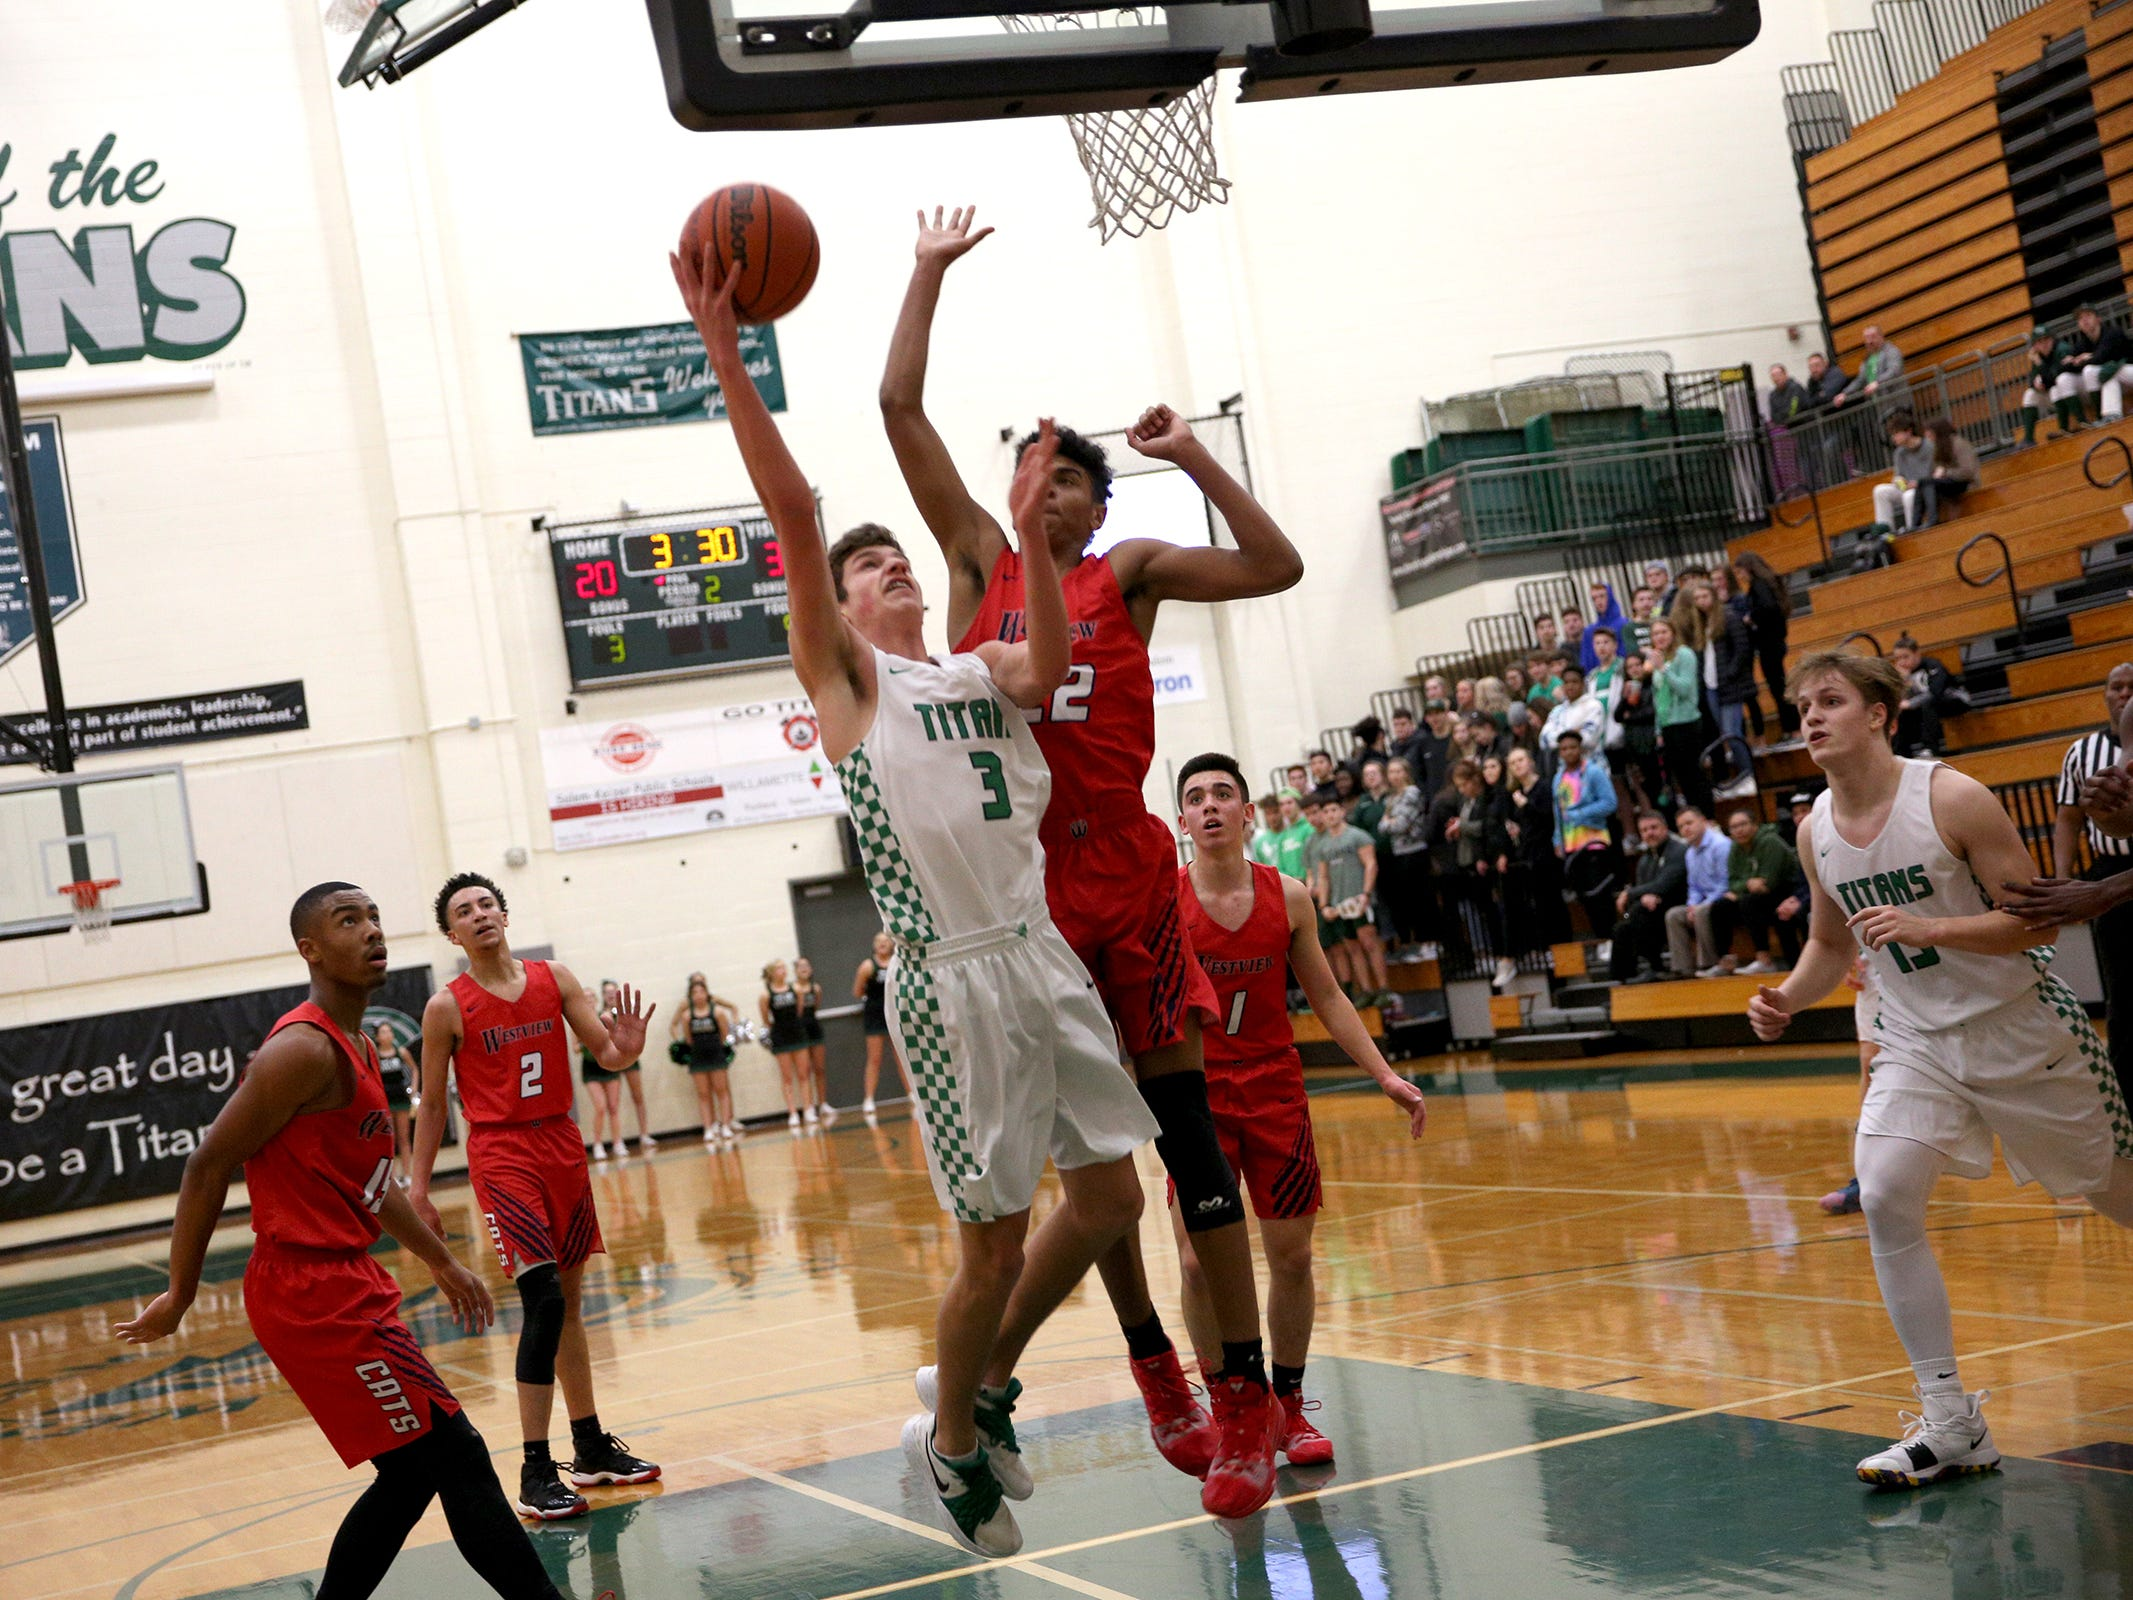 West Salem's Alec Dyson (3) attempts a layup during the West Salem vs. Westview 6A Boys Basketball State Championships first round at West Salem High School in Salem on Tuesday, Feb. 26, 2019.